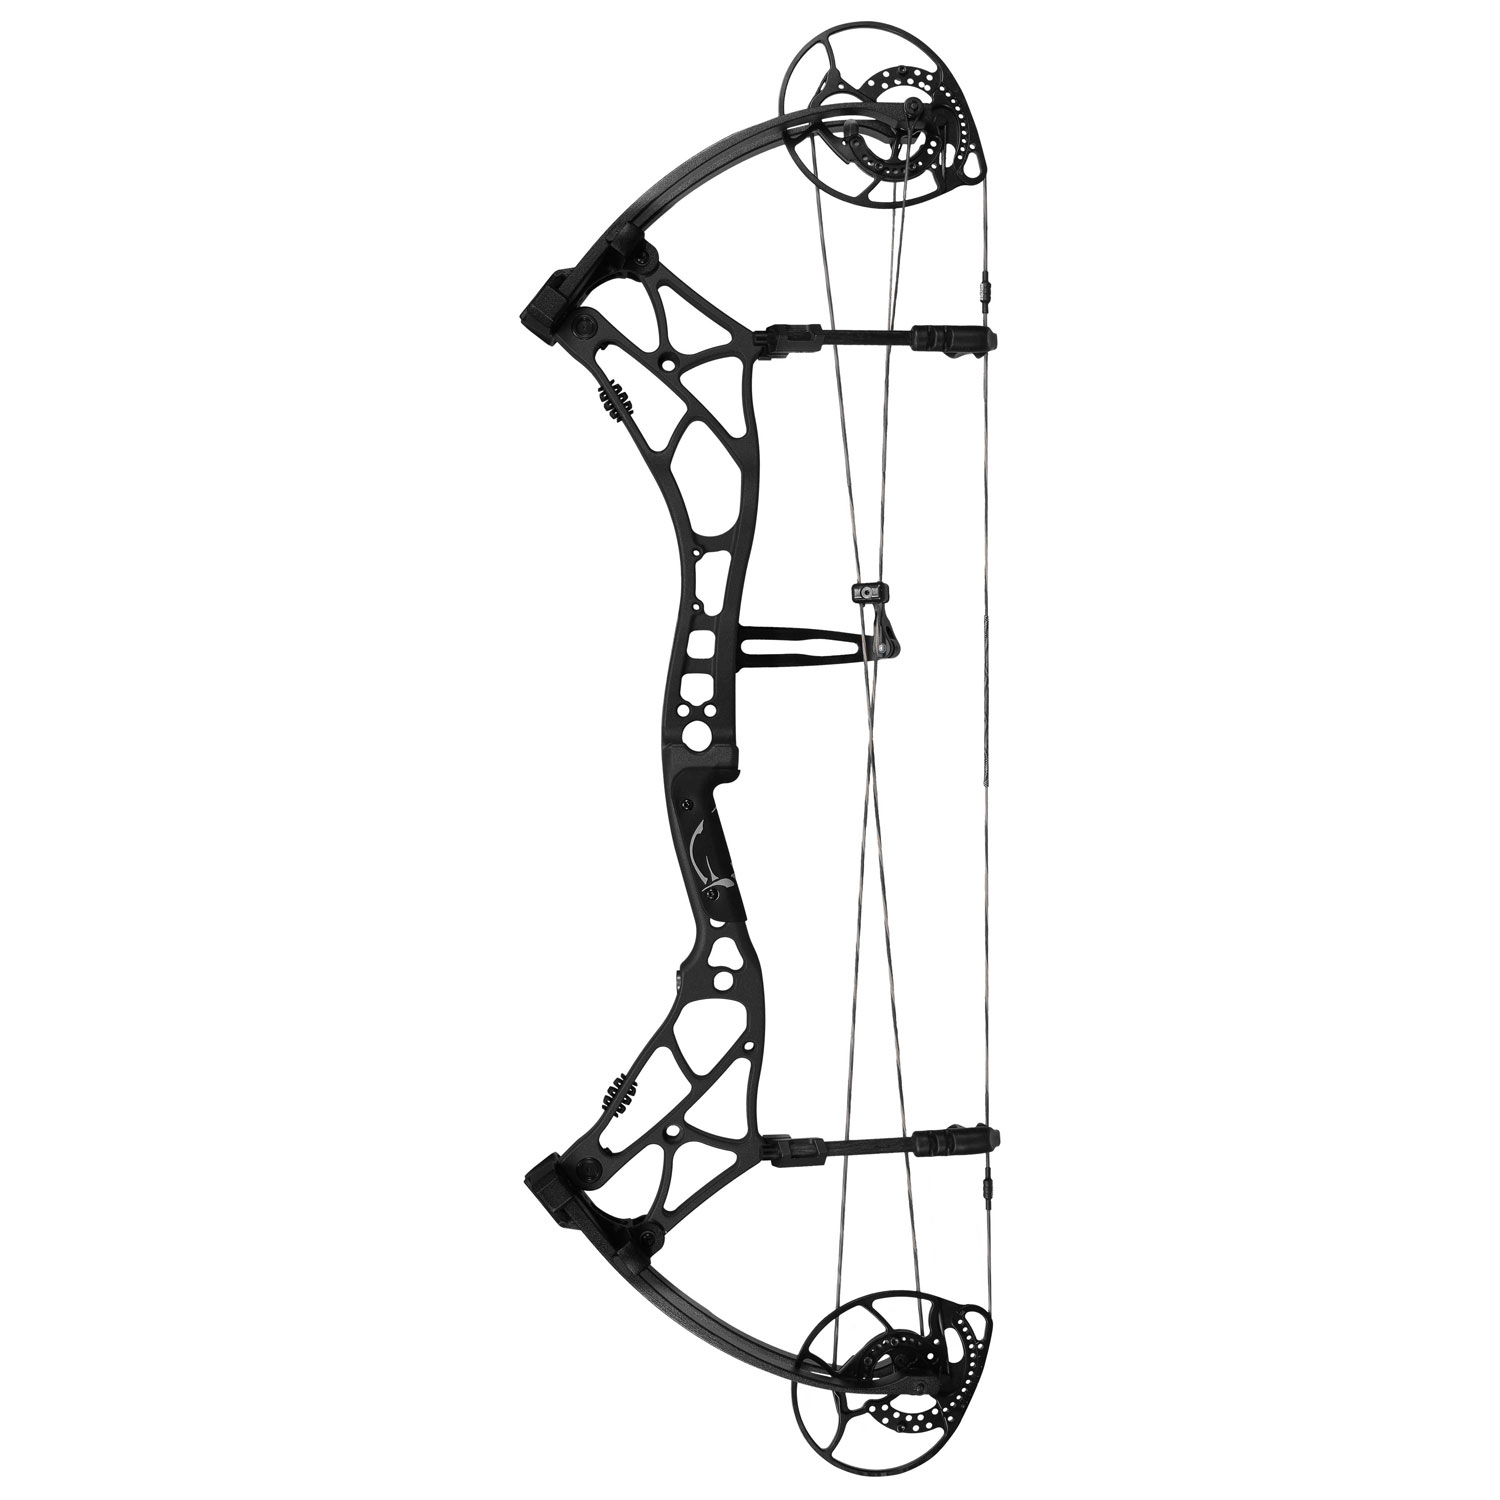 Compound Bow Clipart 20 Free Cliparts